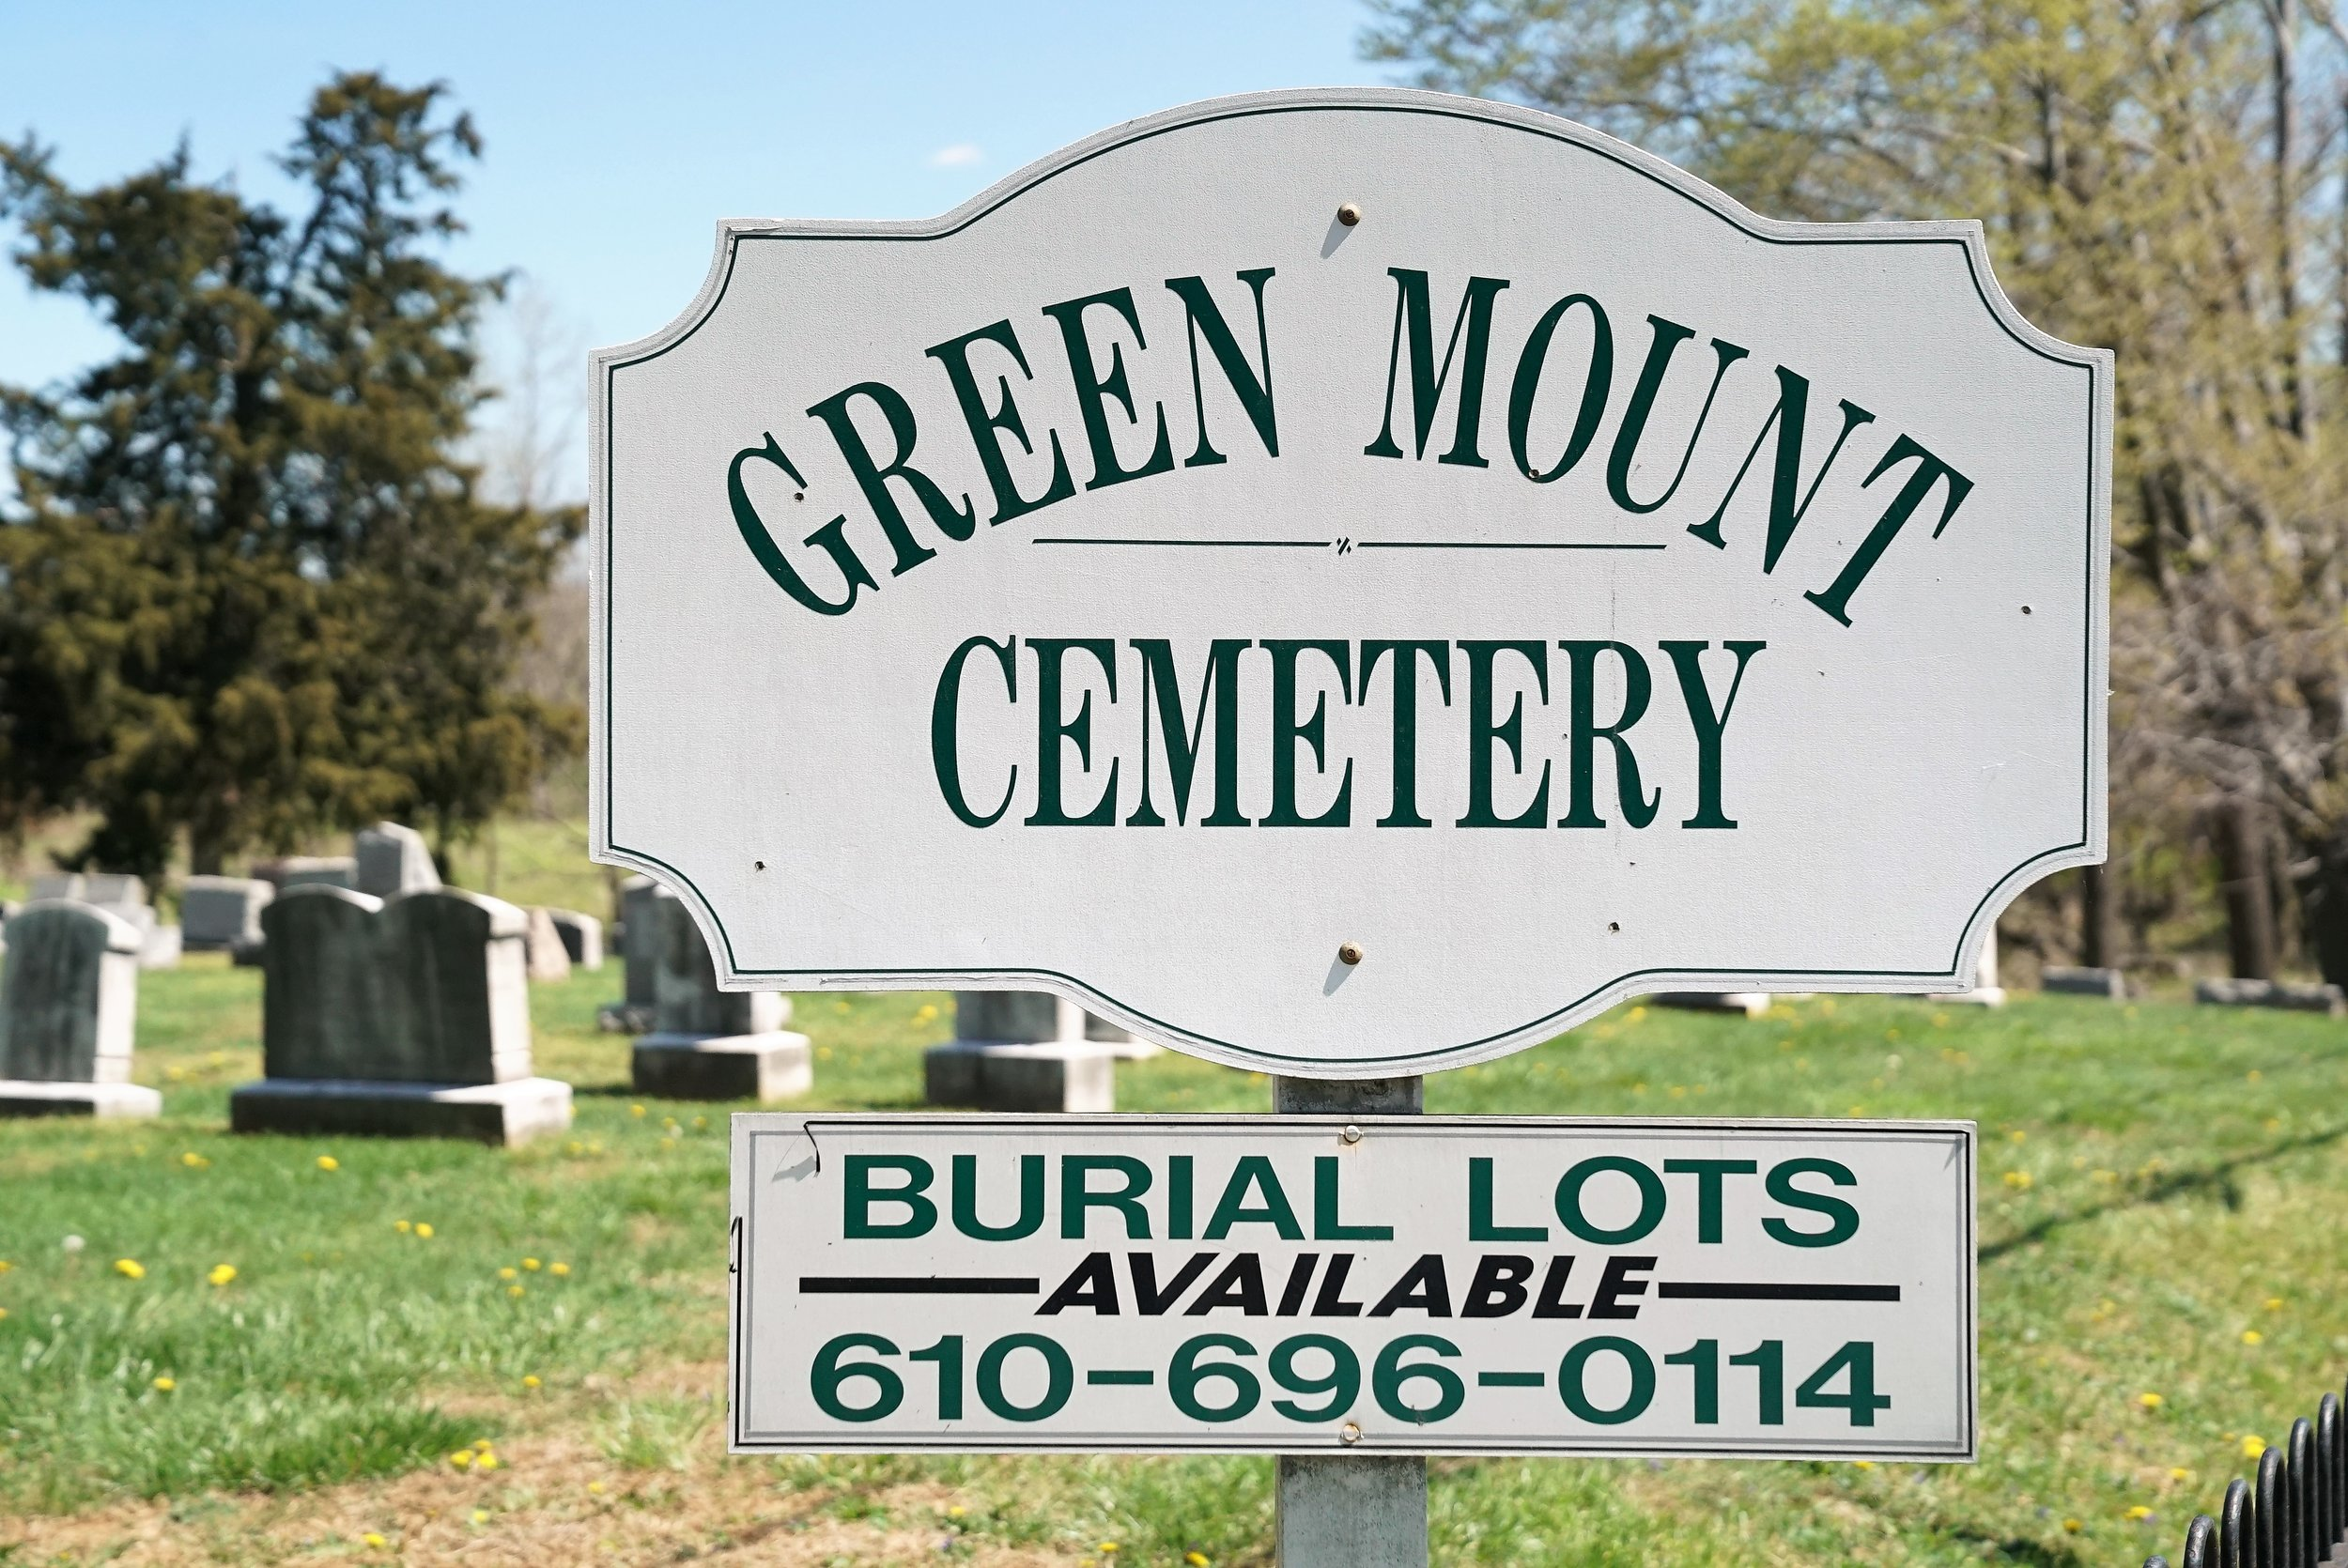 Roadside sign at Green Mount Cemetery in West Chester, Pennsylvania.